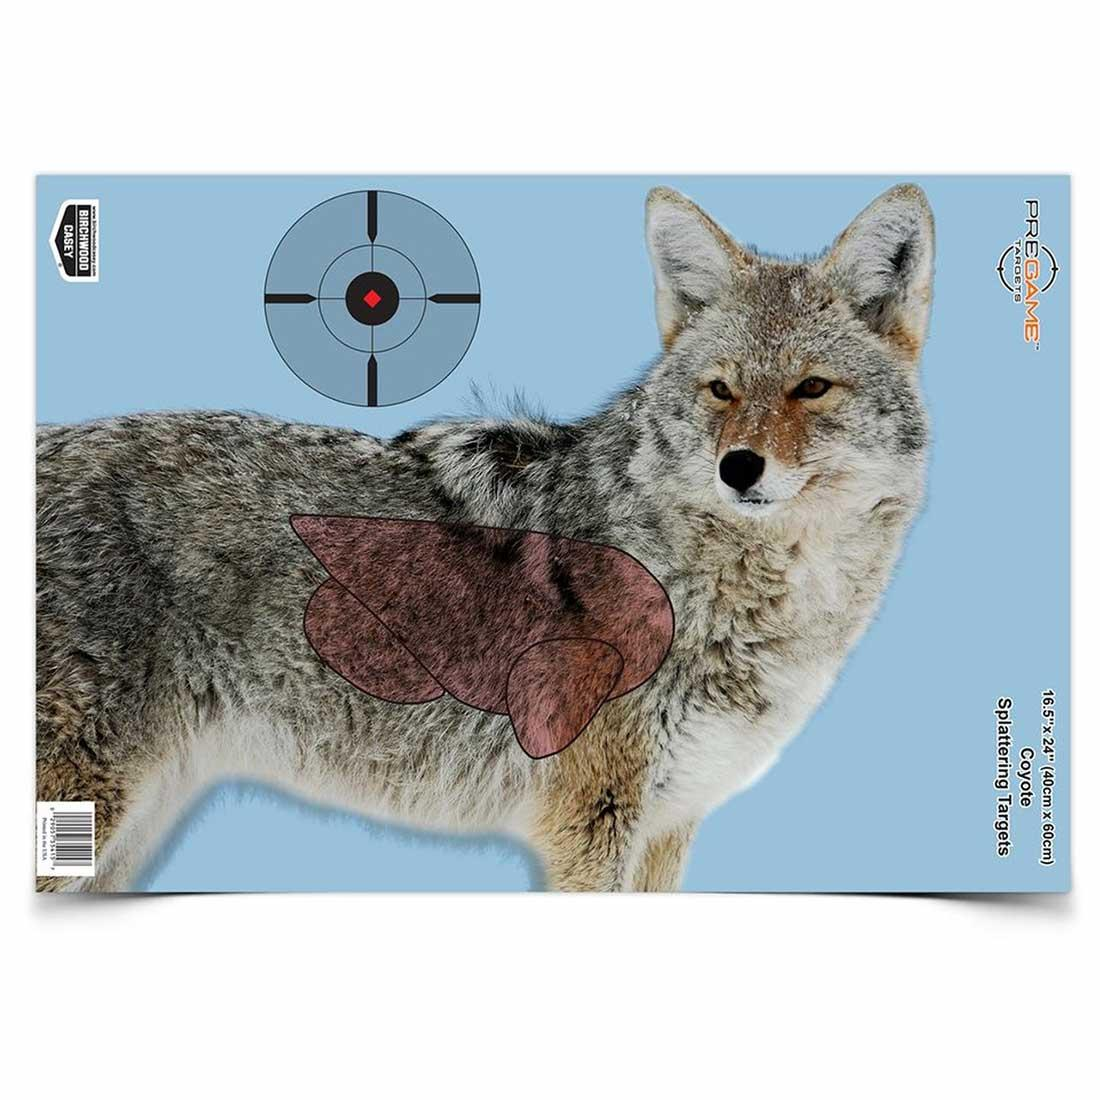 Birchwood Casey Pregame Coyote Paper Target - 3 Packs_1.jpg